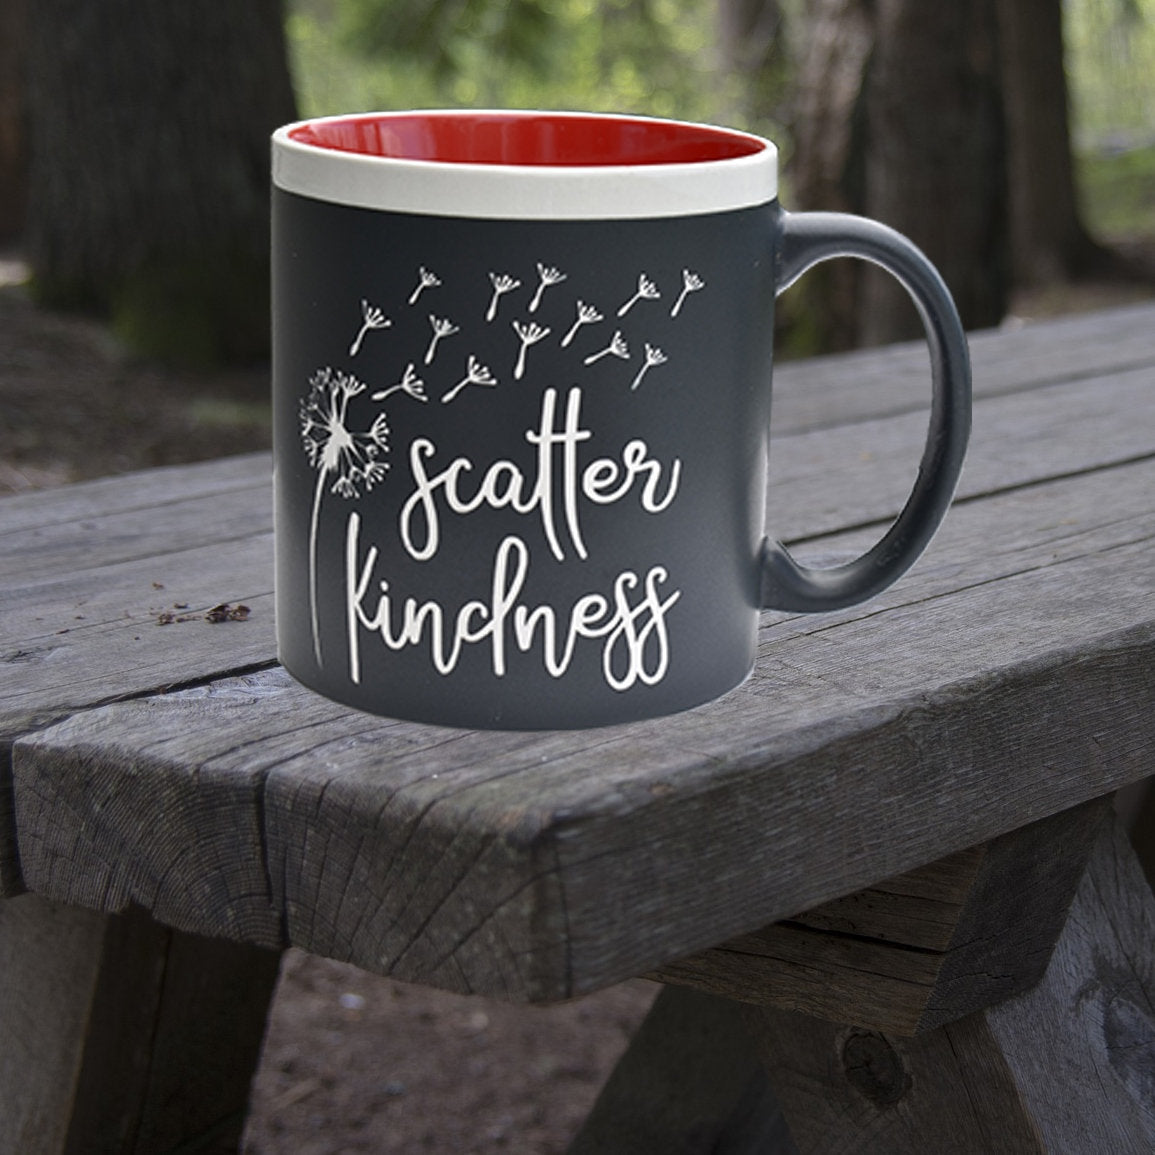 Scatter Kindness 22 oz Coffee Mug Jumbo Message Mug Gift for Her Dandelions Theme